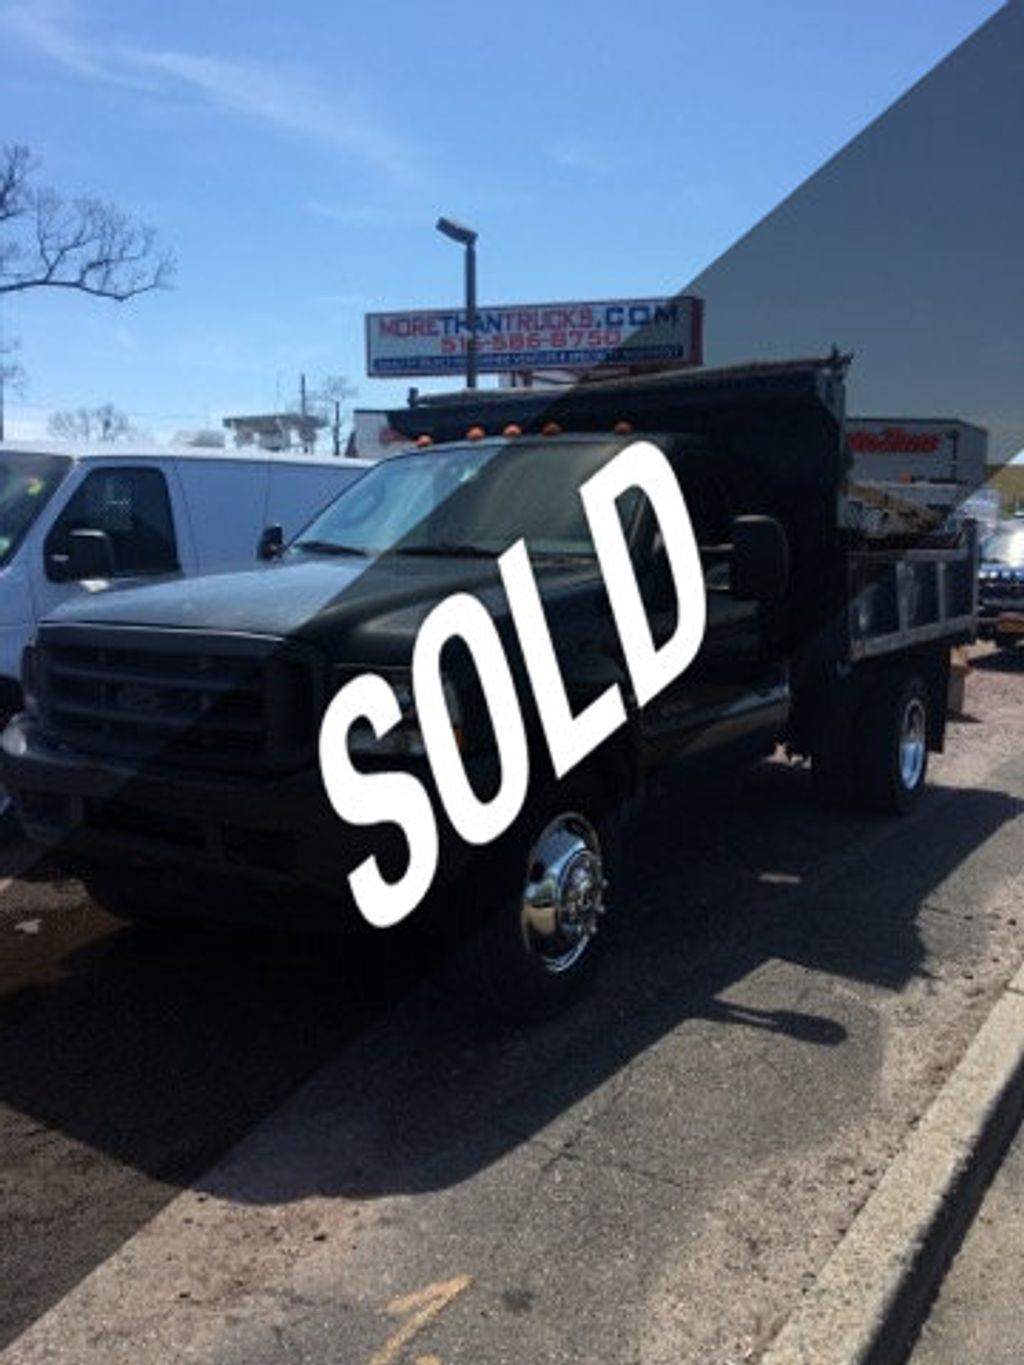 2004 Ford Super Duty F-550 9 FOOT MASON DUMP  with PTO F550 9 FOOT MASON DUMP 5 SPEED WITH PTO CONTROLLER - 14872380 - 0